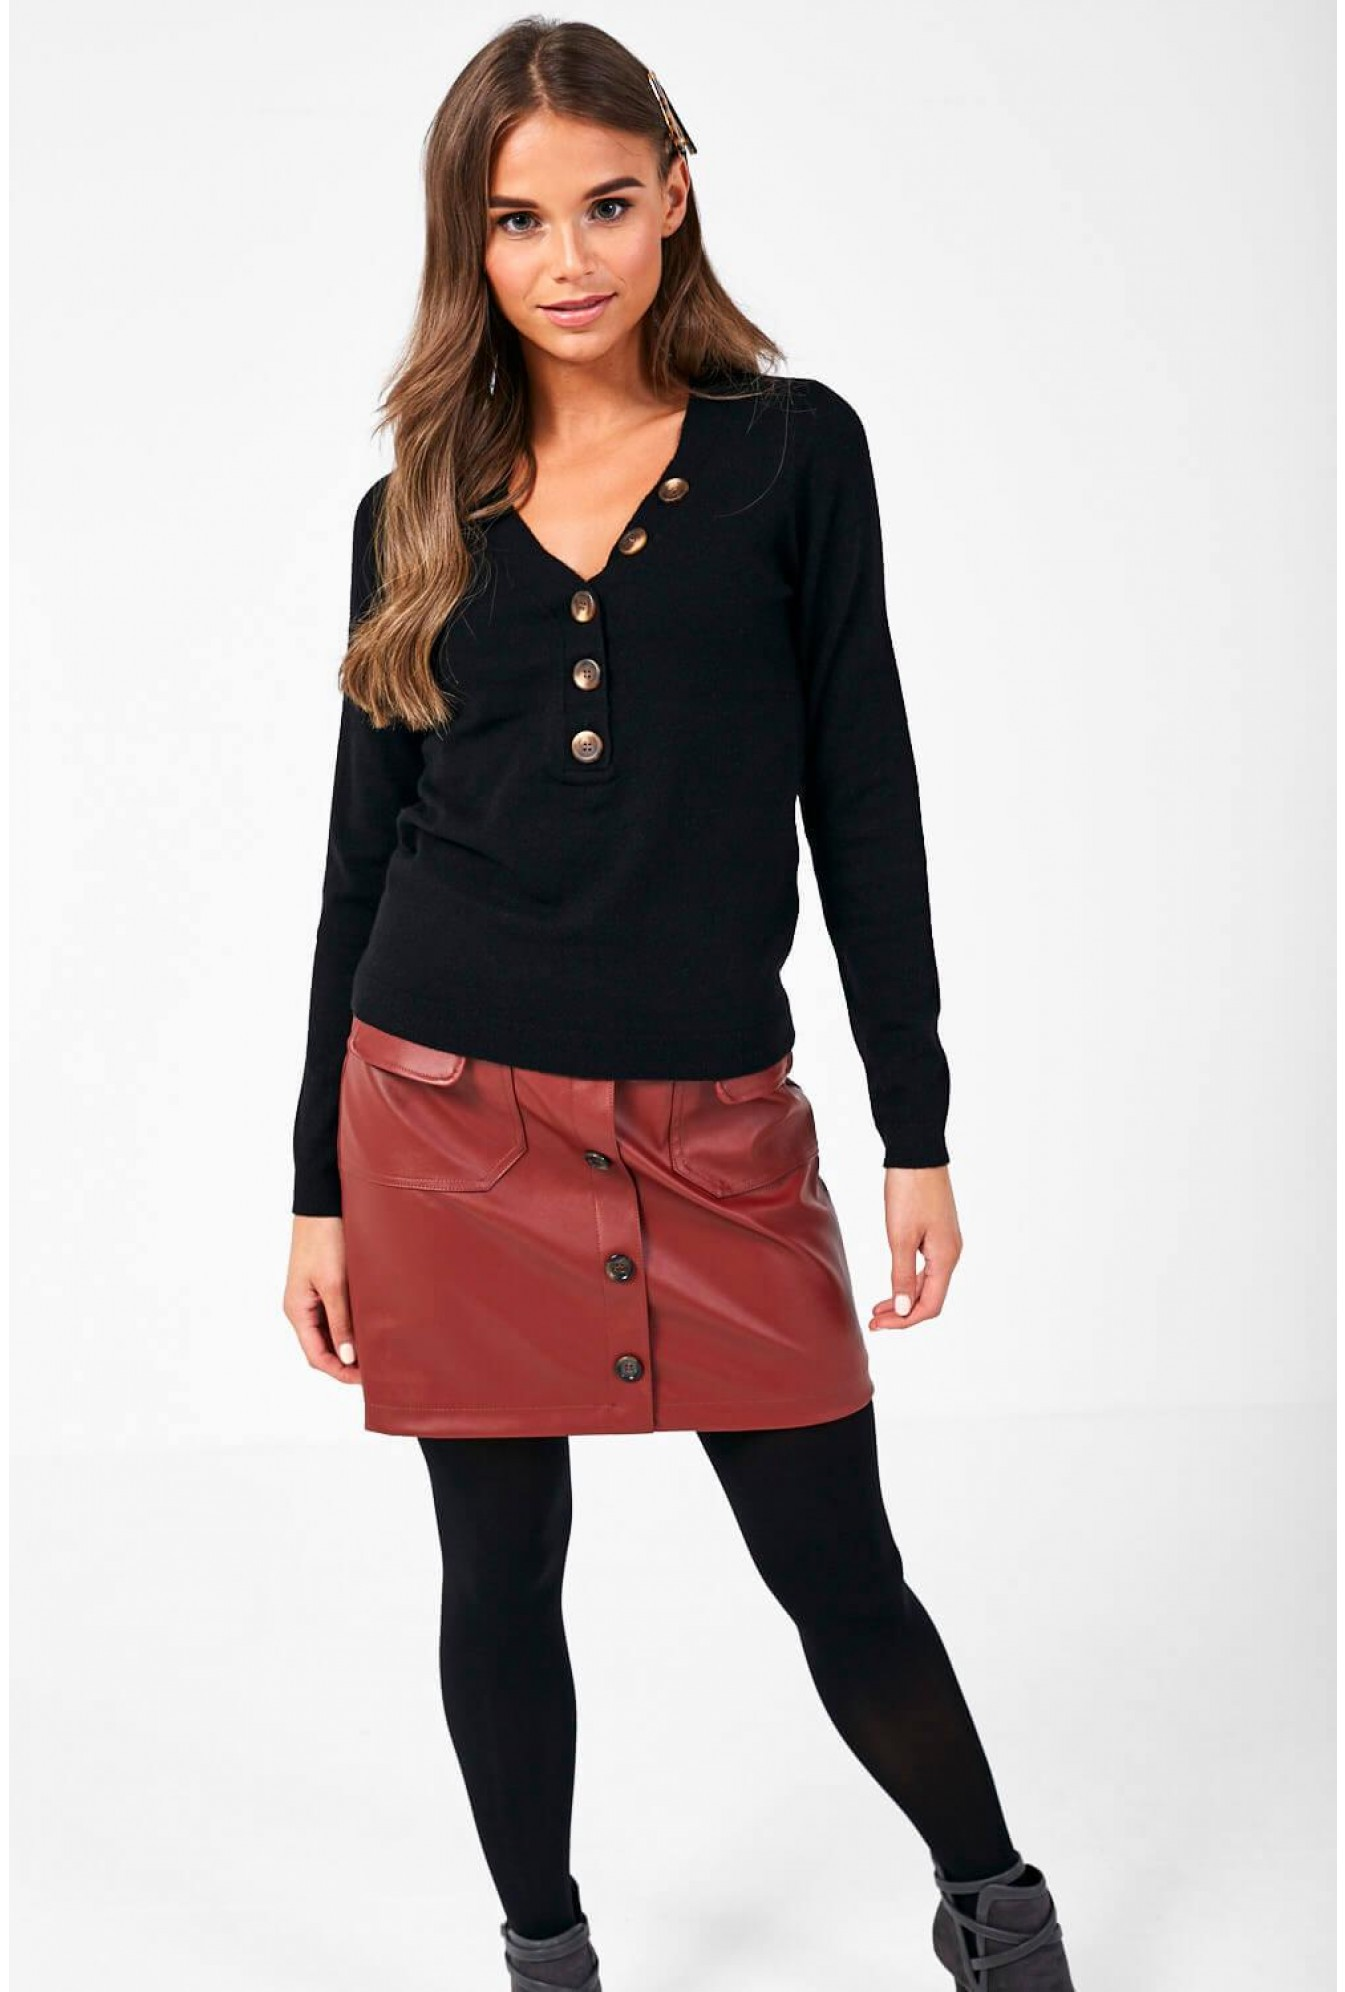 lowest price 37519 1d842 Chip Pullover with Button Detail in Black